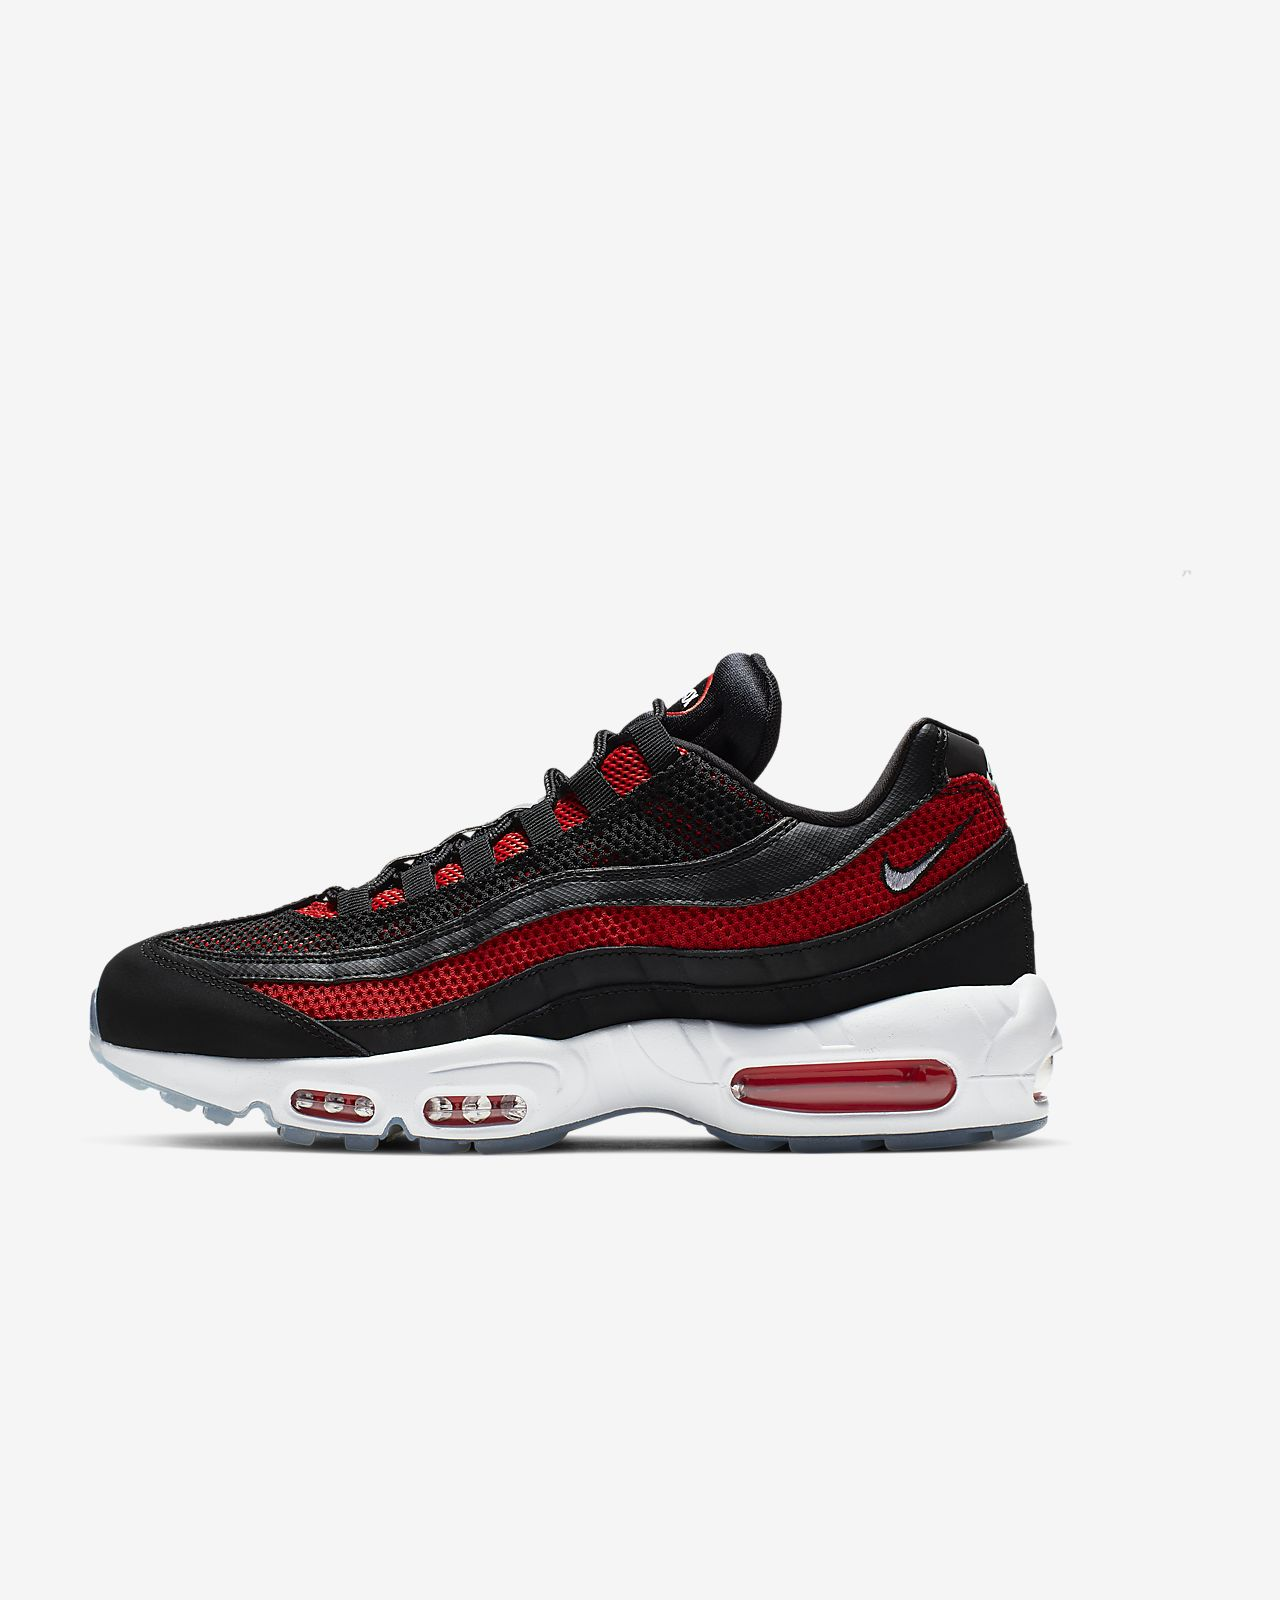 online retailer 6711e f8f3a ... Nike Air Max 95 Essential Men s Shoe